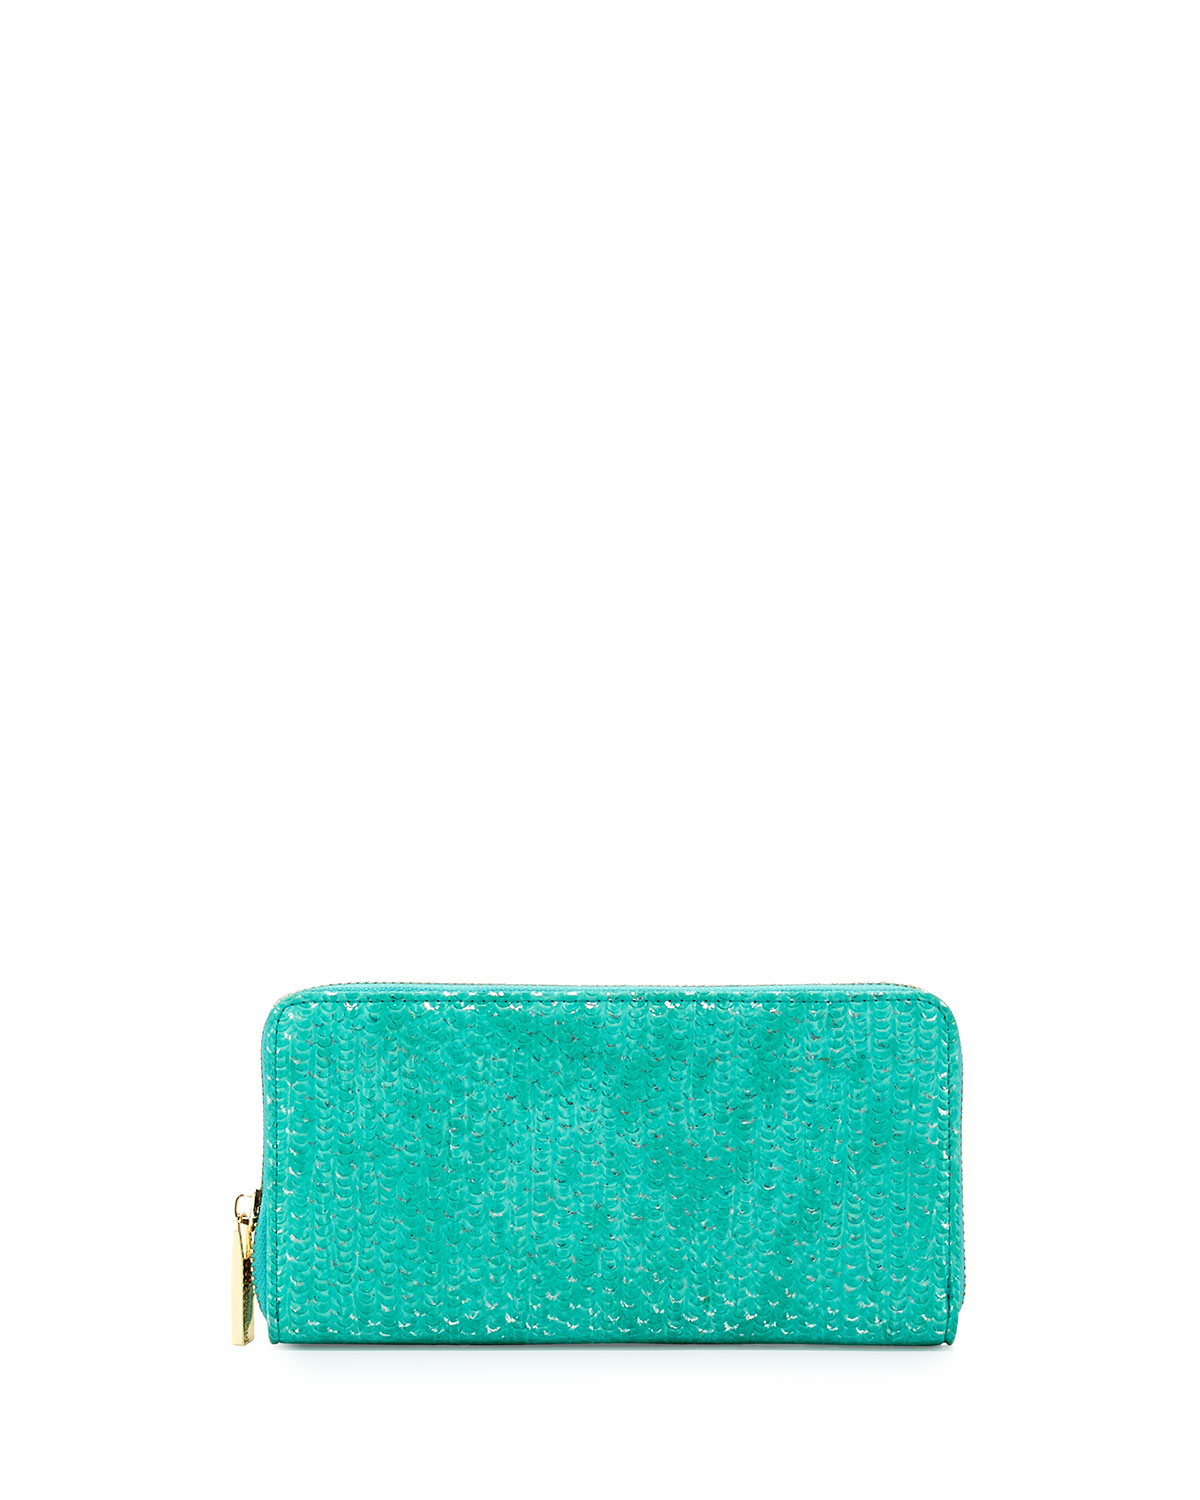 Textured Shimmer Zip Wallet, Turquoise   Deux Lux